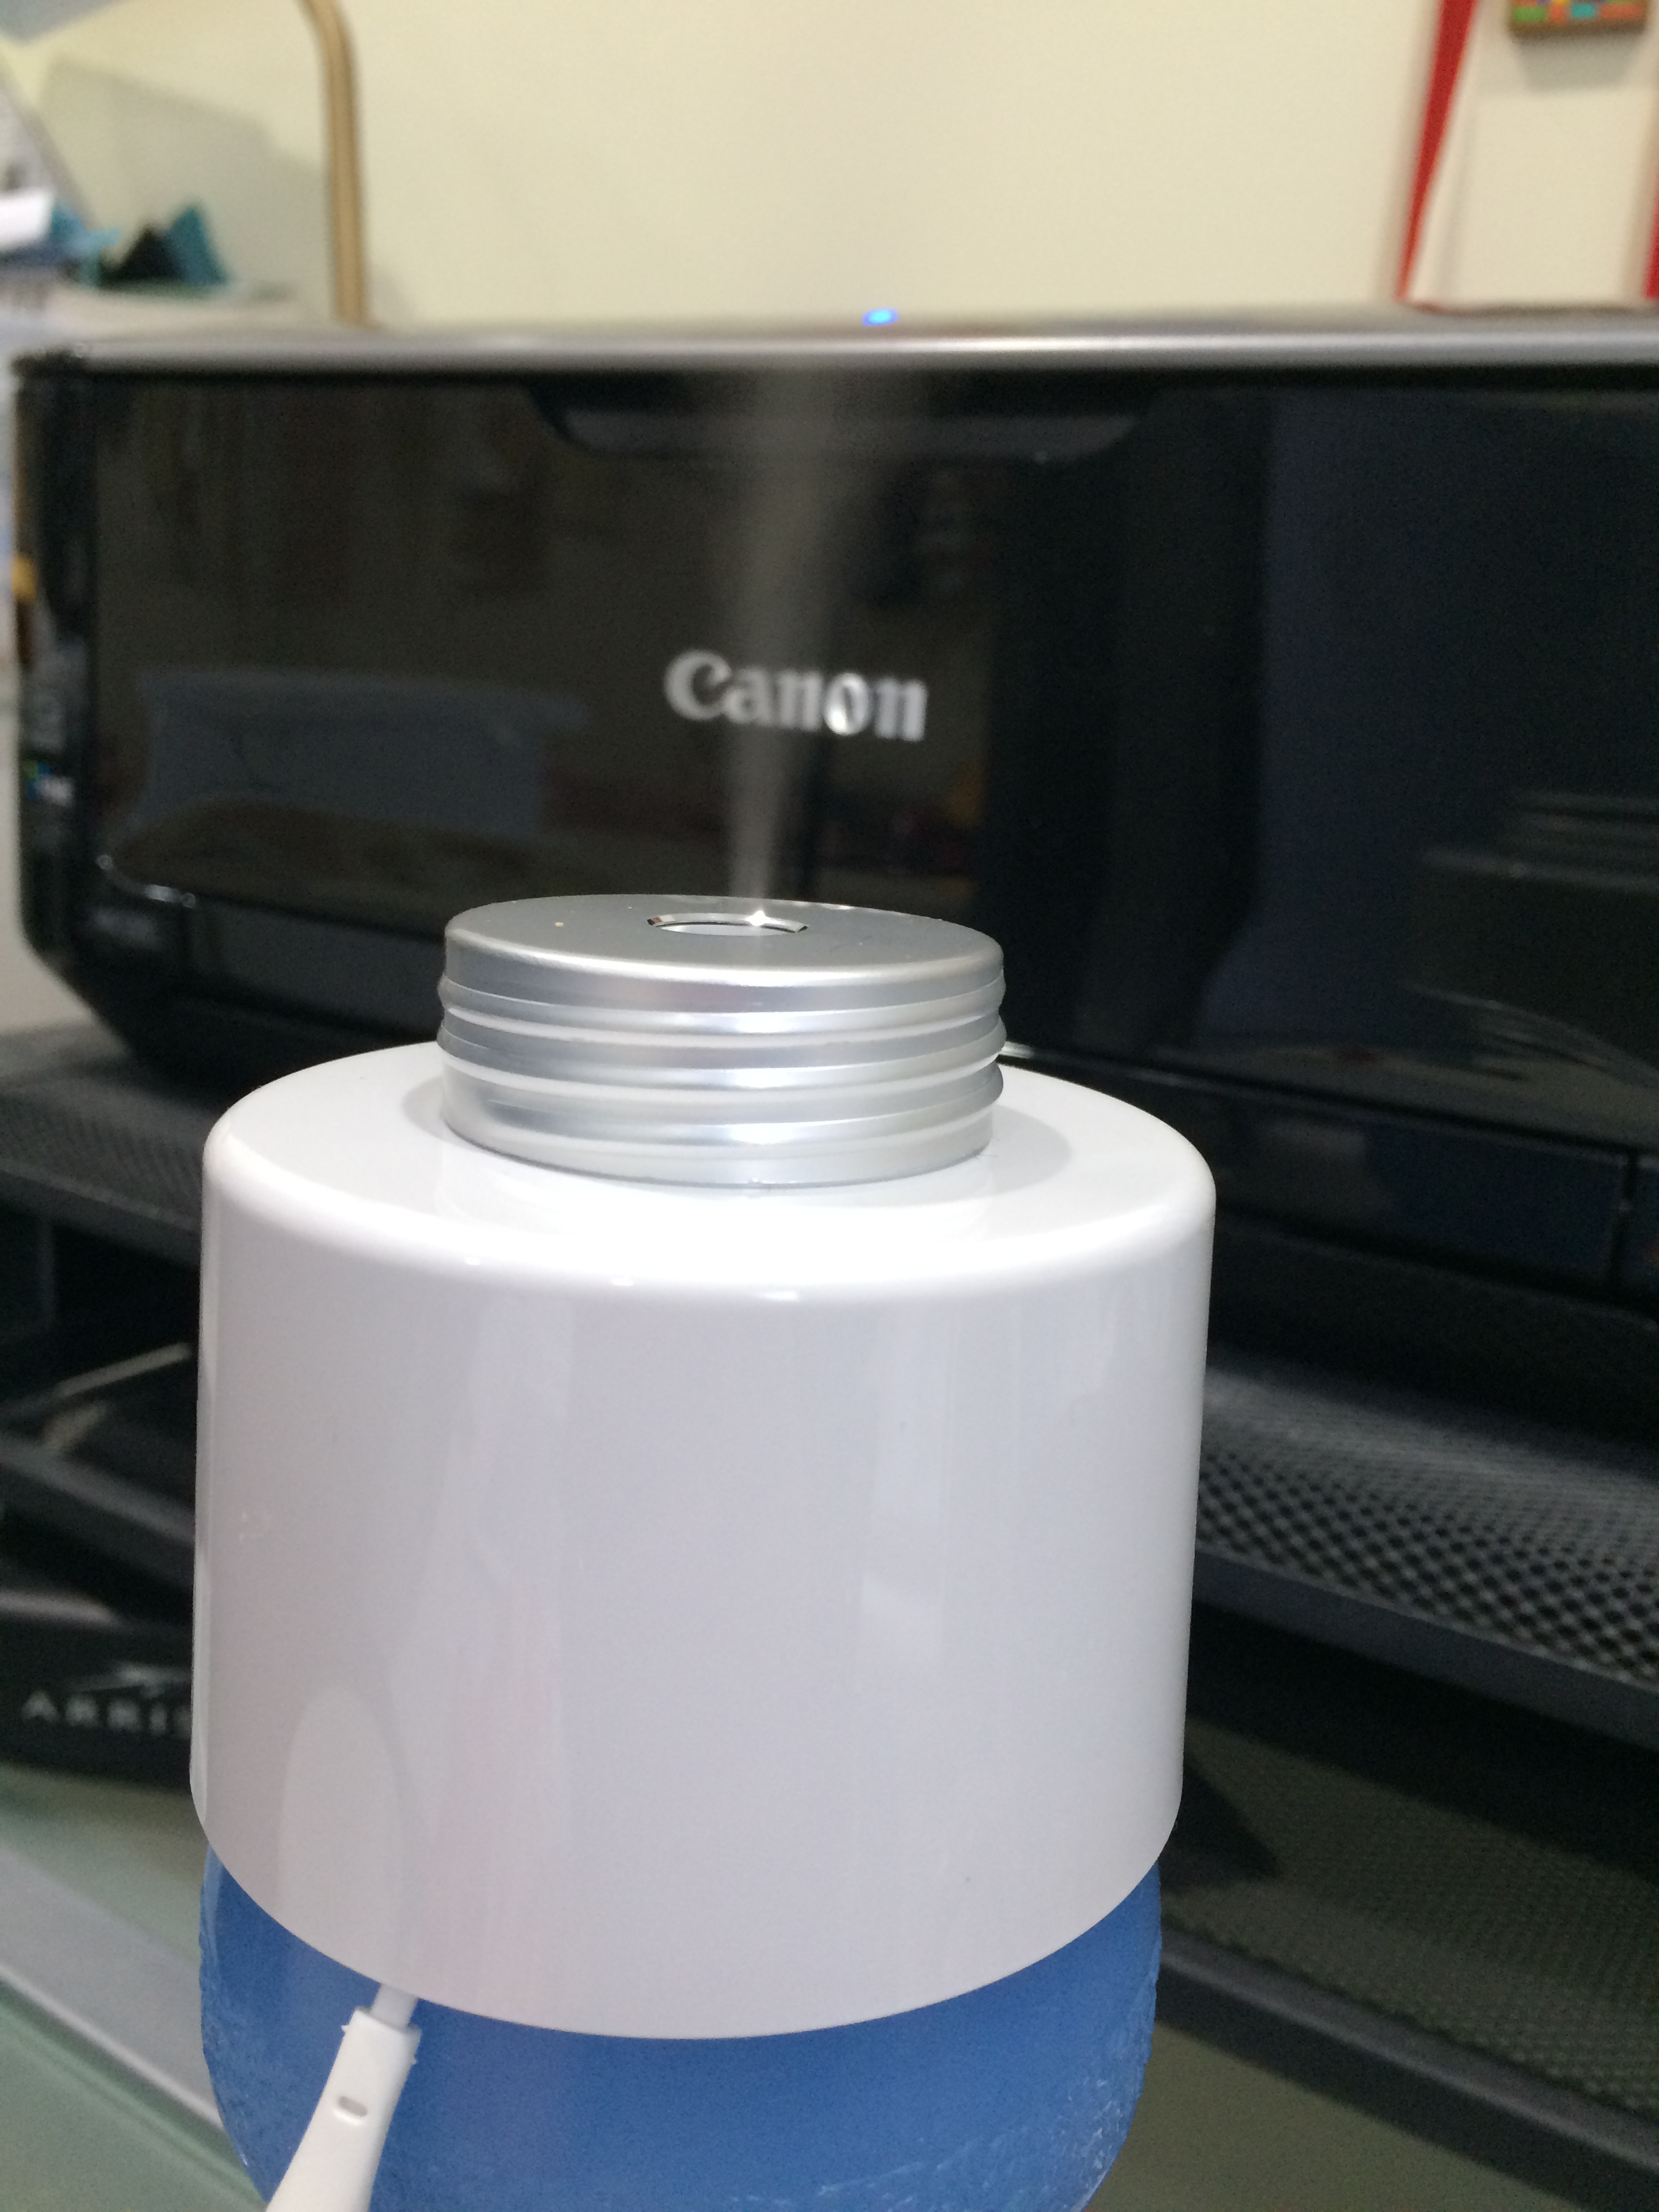 The portable humidifier attached to the top of my water bottle, steaming away.